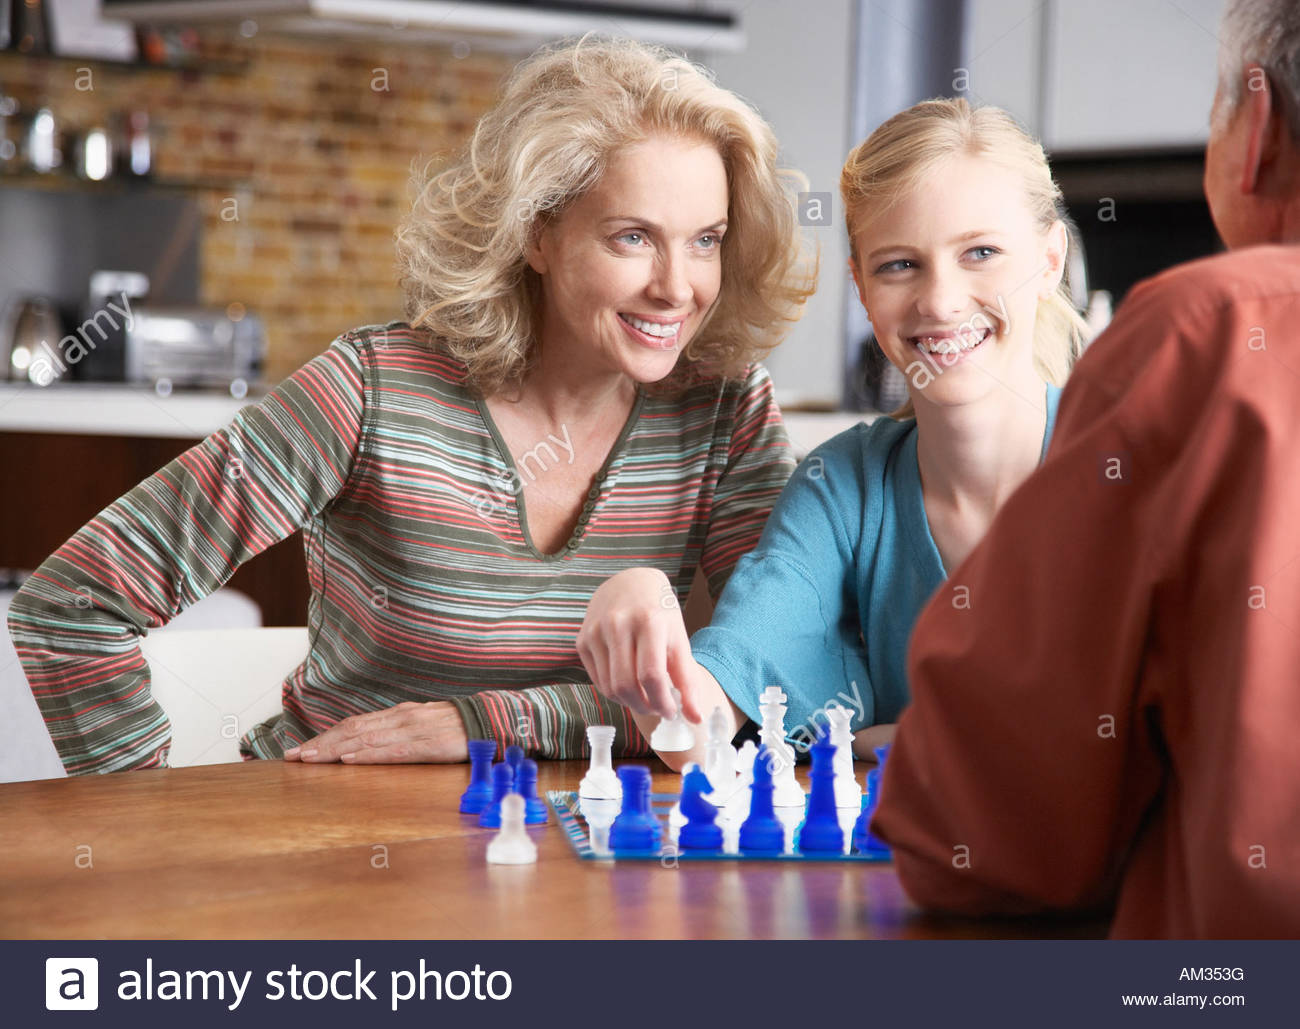 Couple playing chess with girl - Stock Image